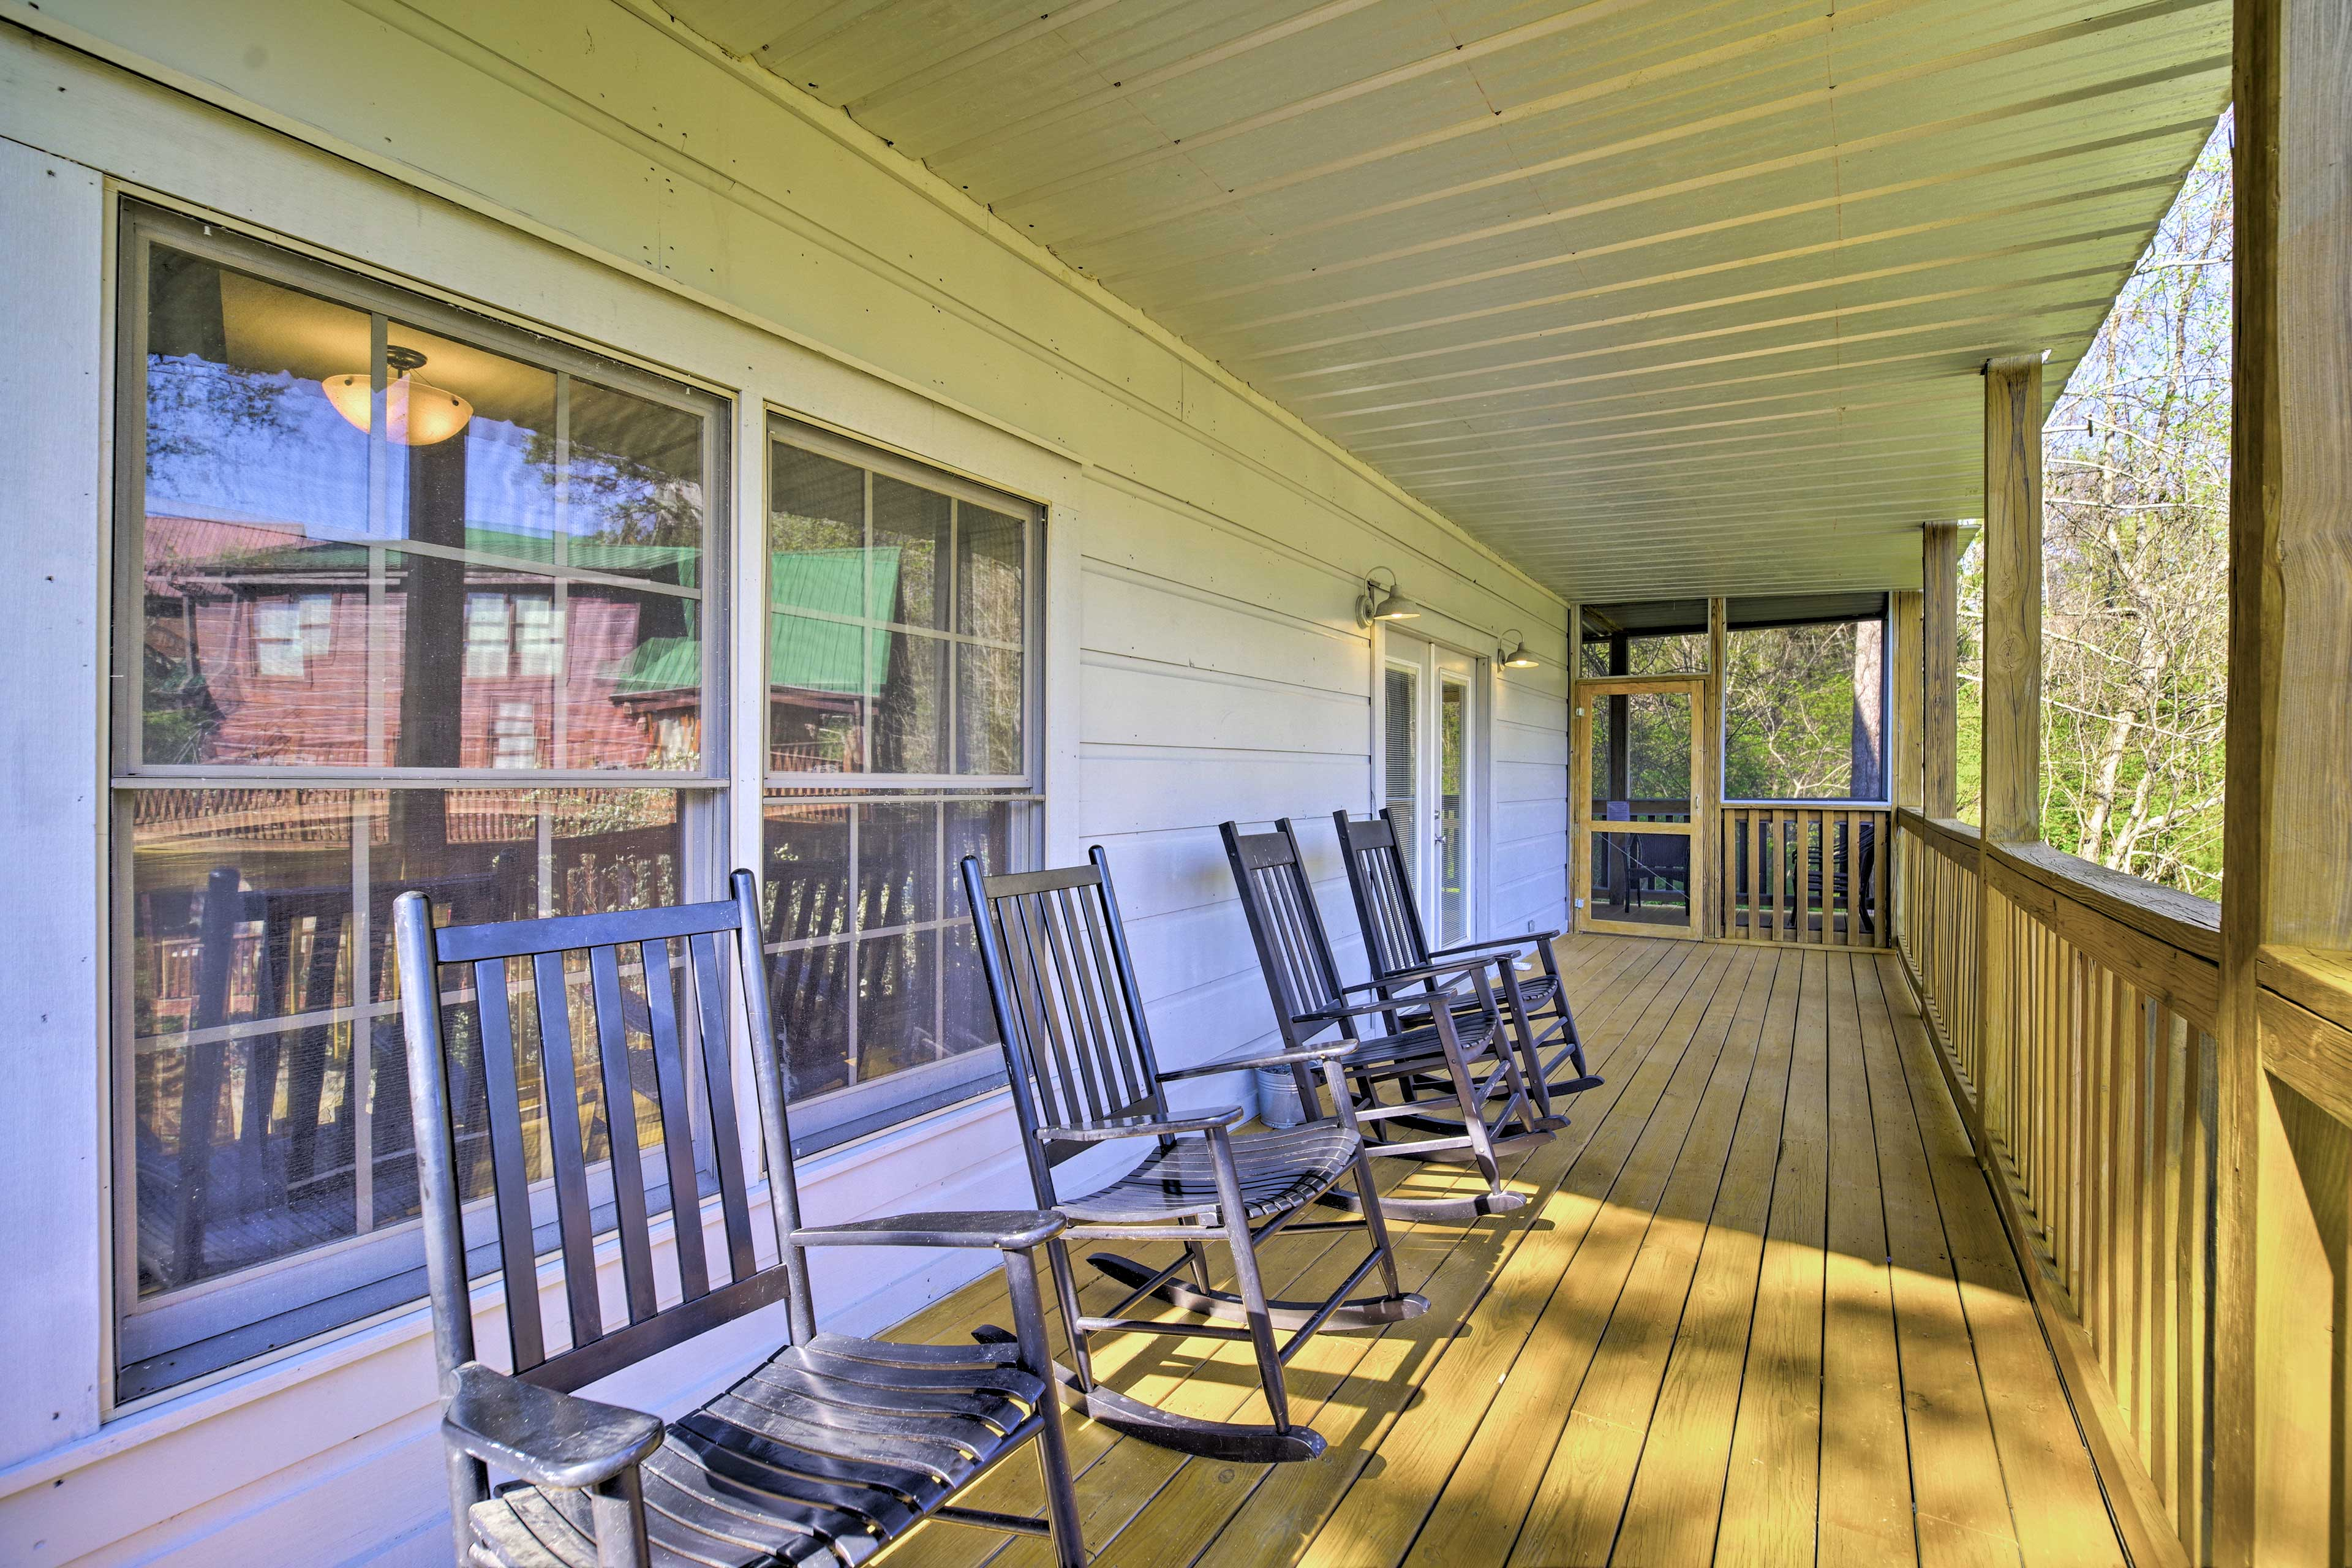 Start each morning with a cup of coffee on the rocking chairs.